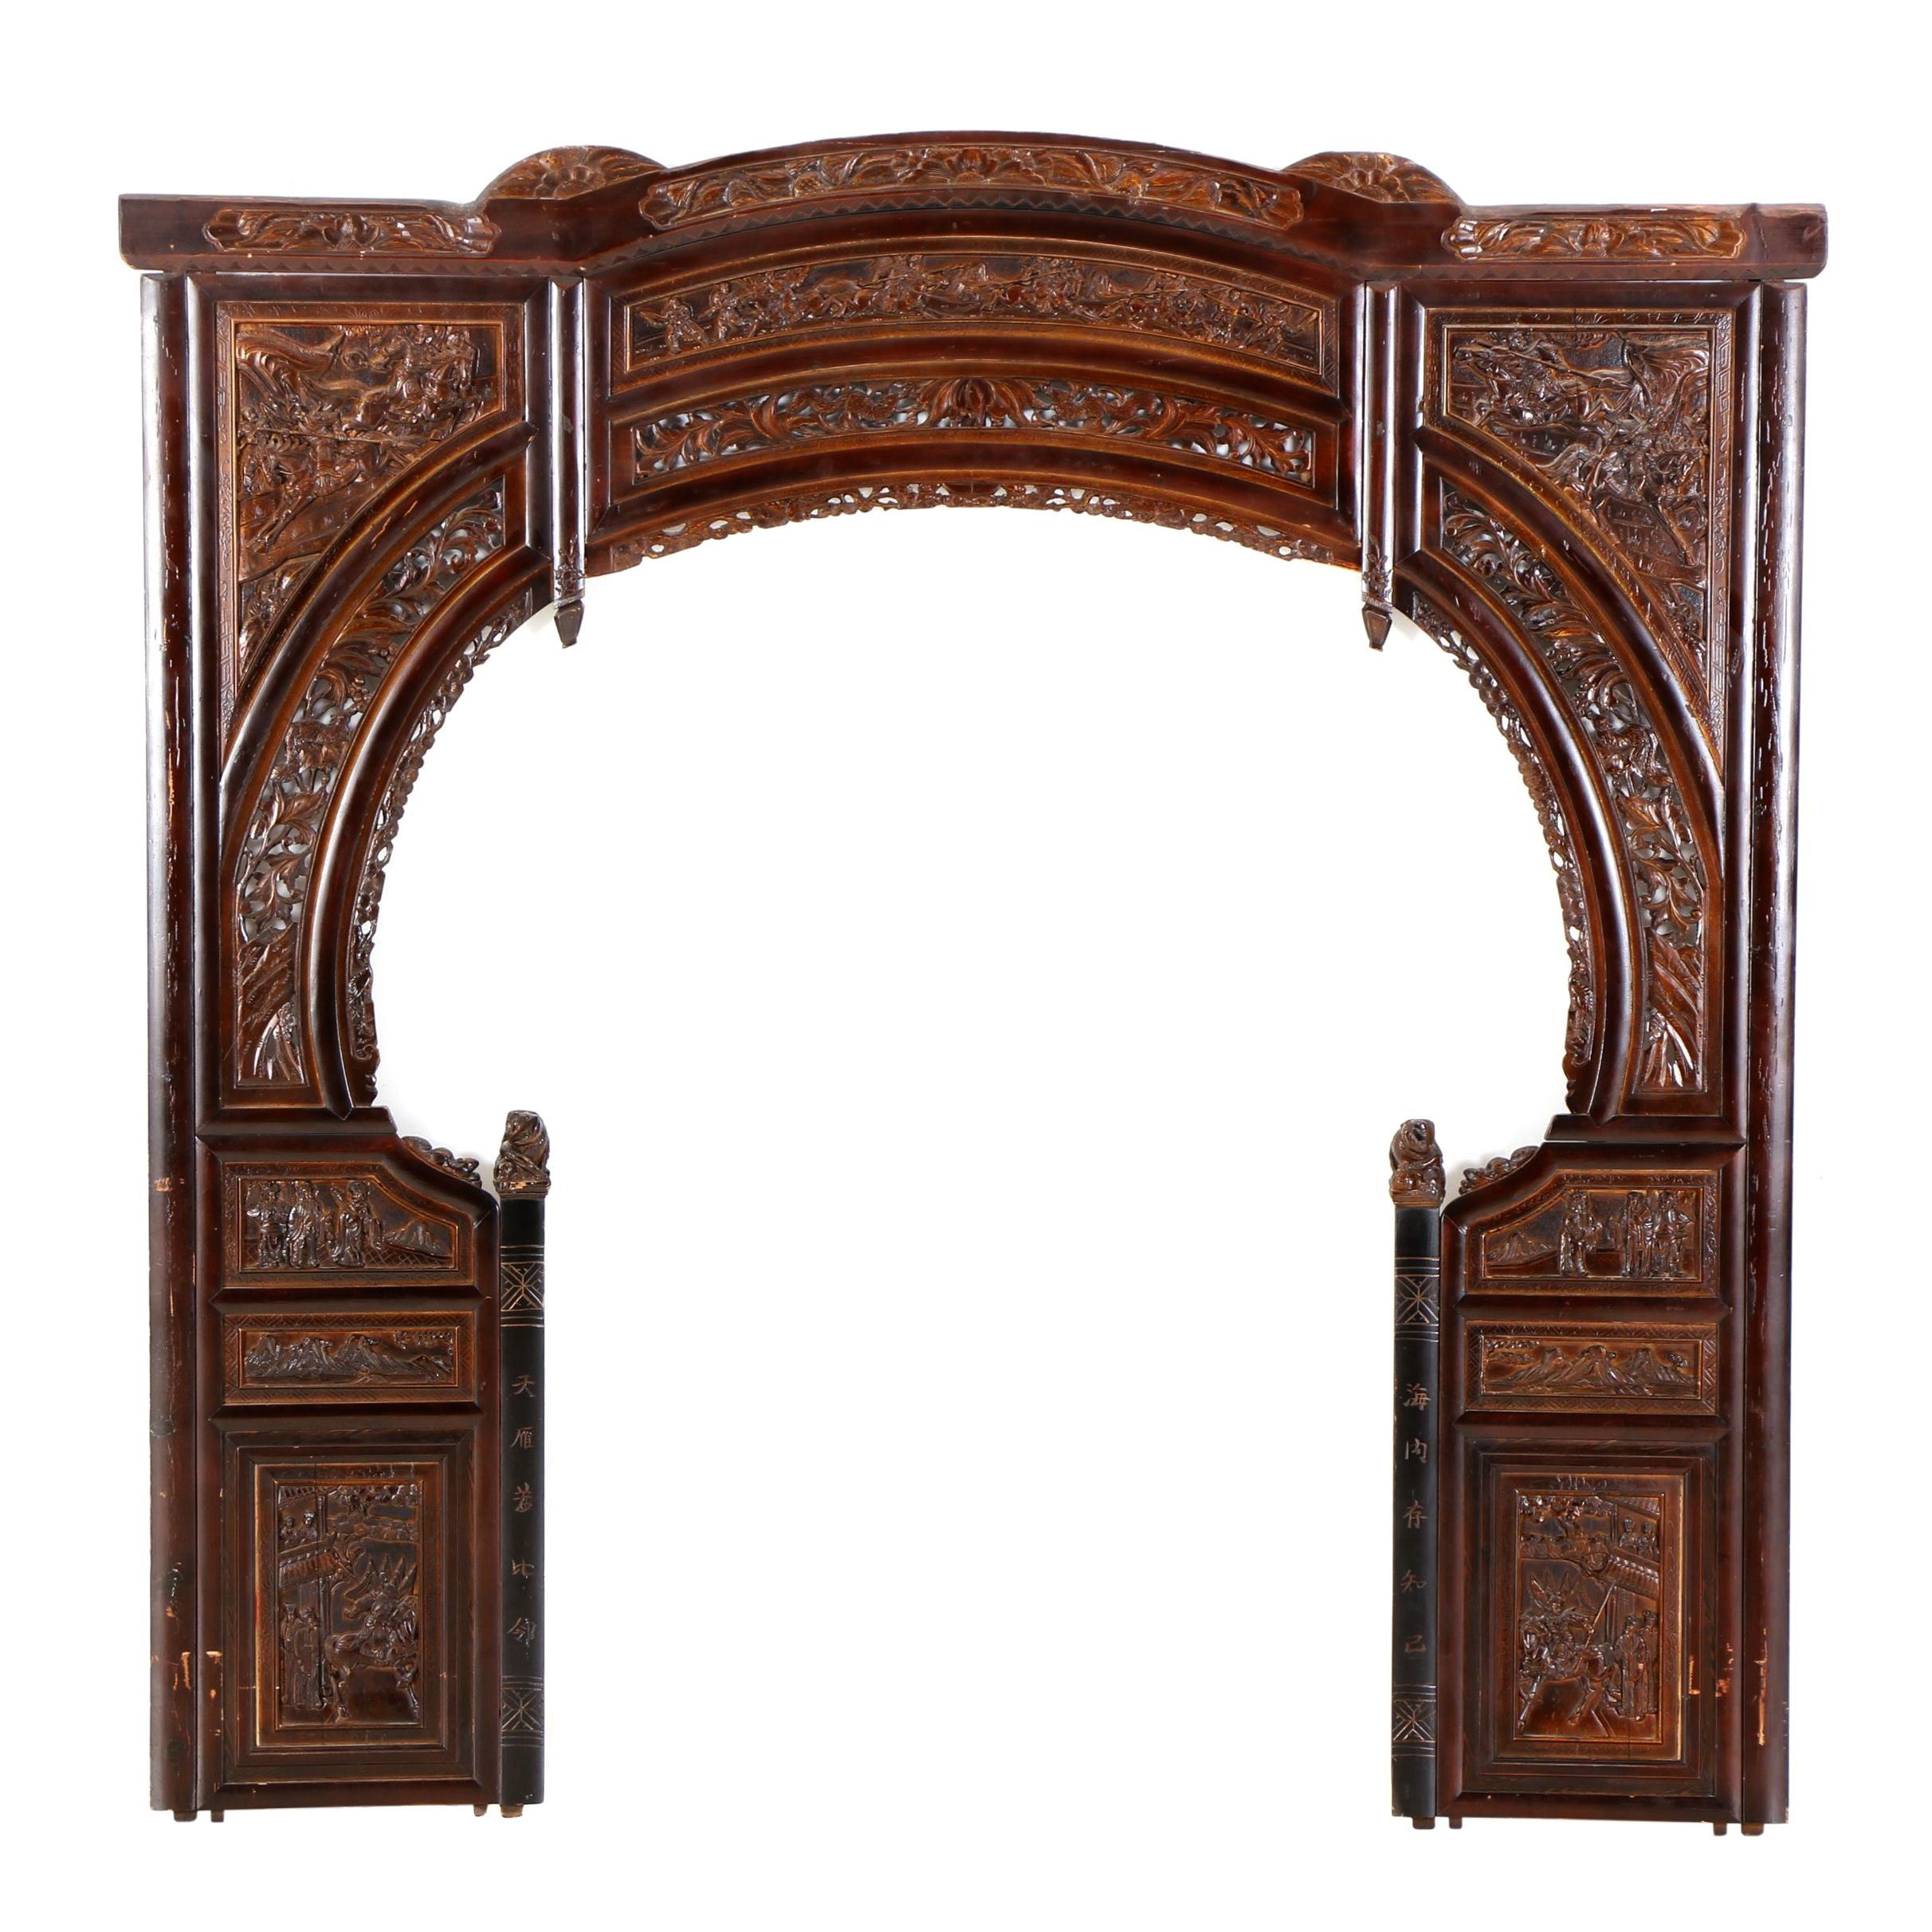 Chinese Carved Wood Architectural Door